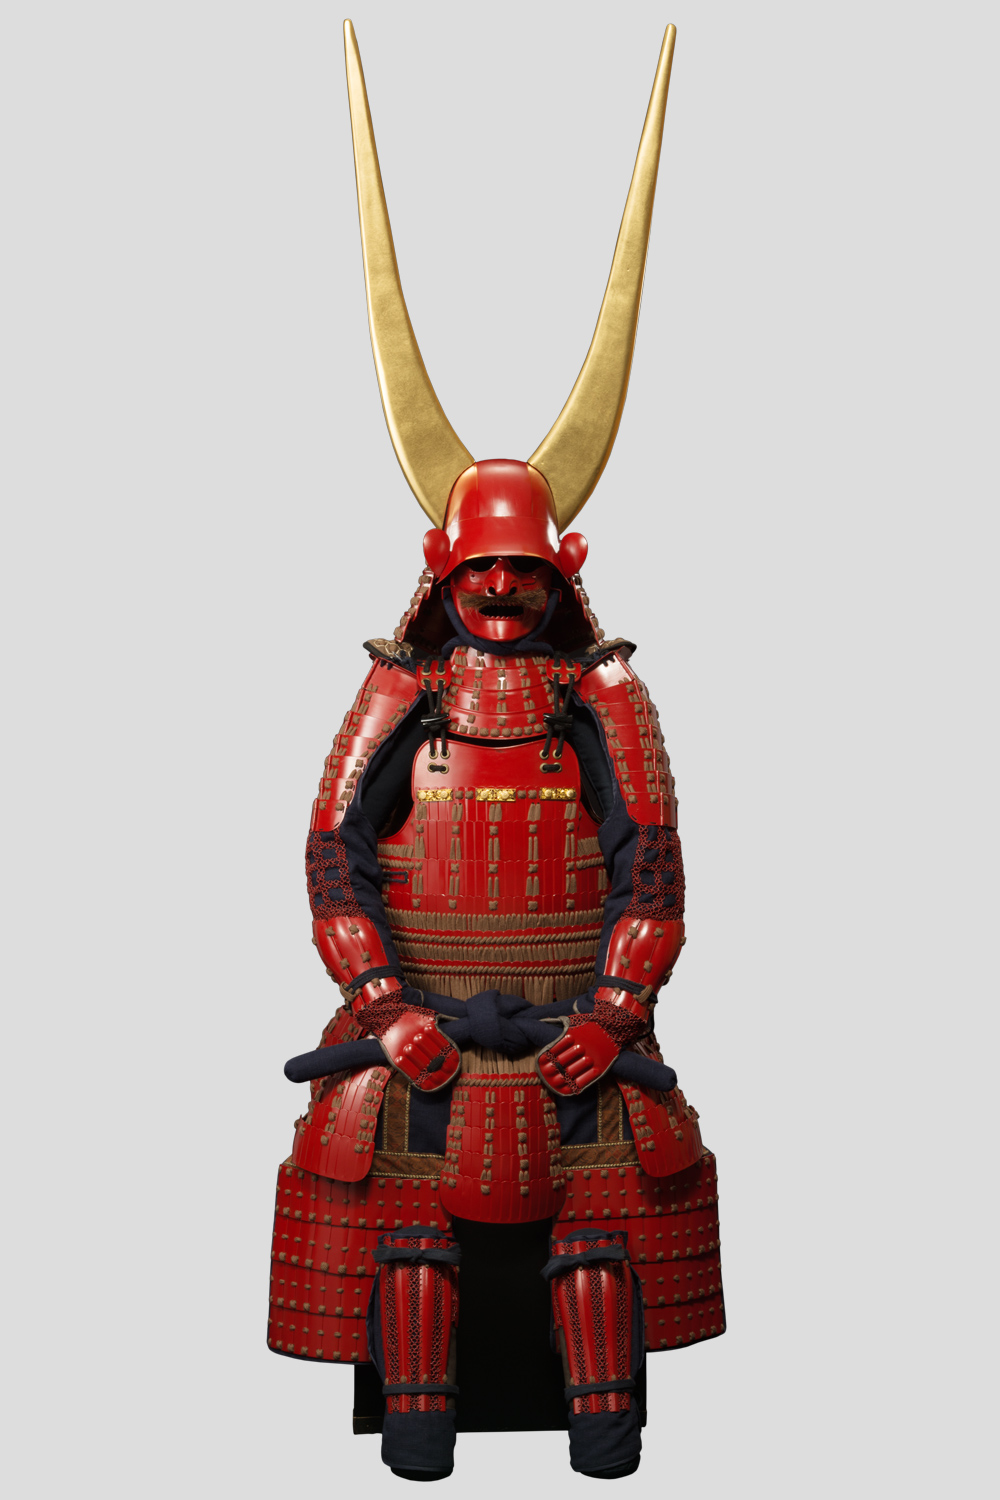 Modeled After Armor Used by Naotaka Ii